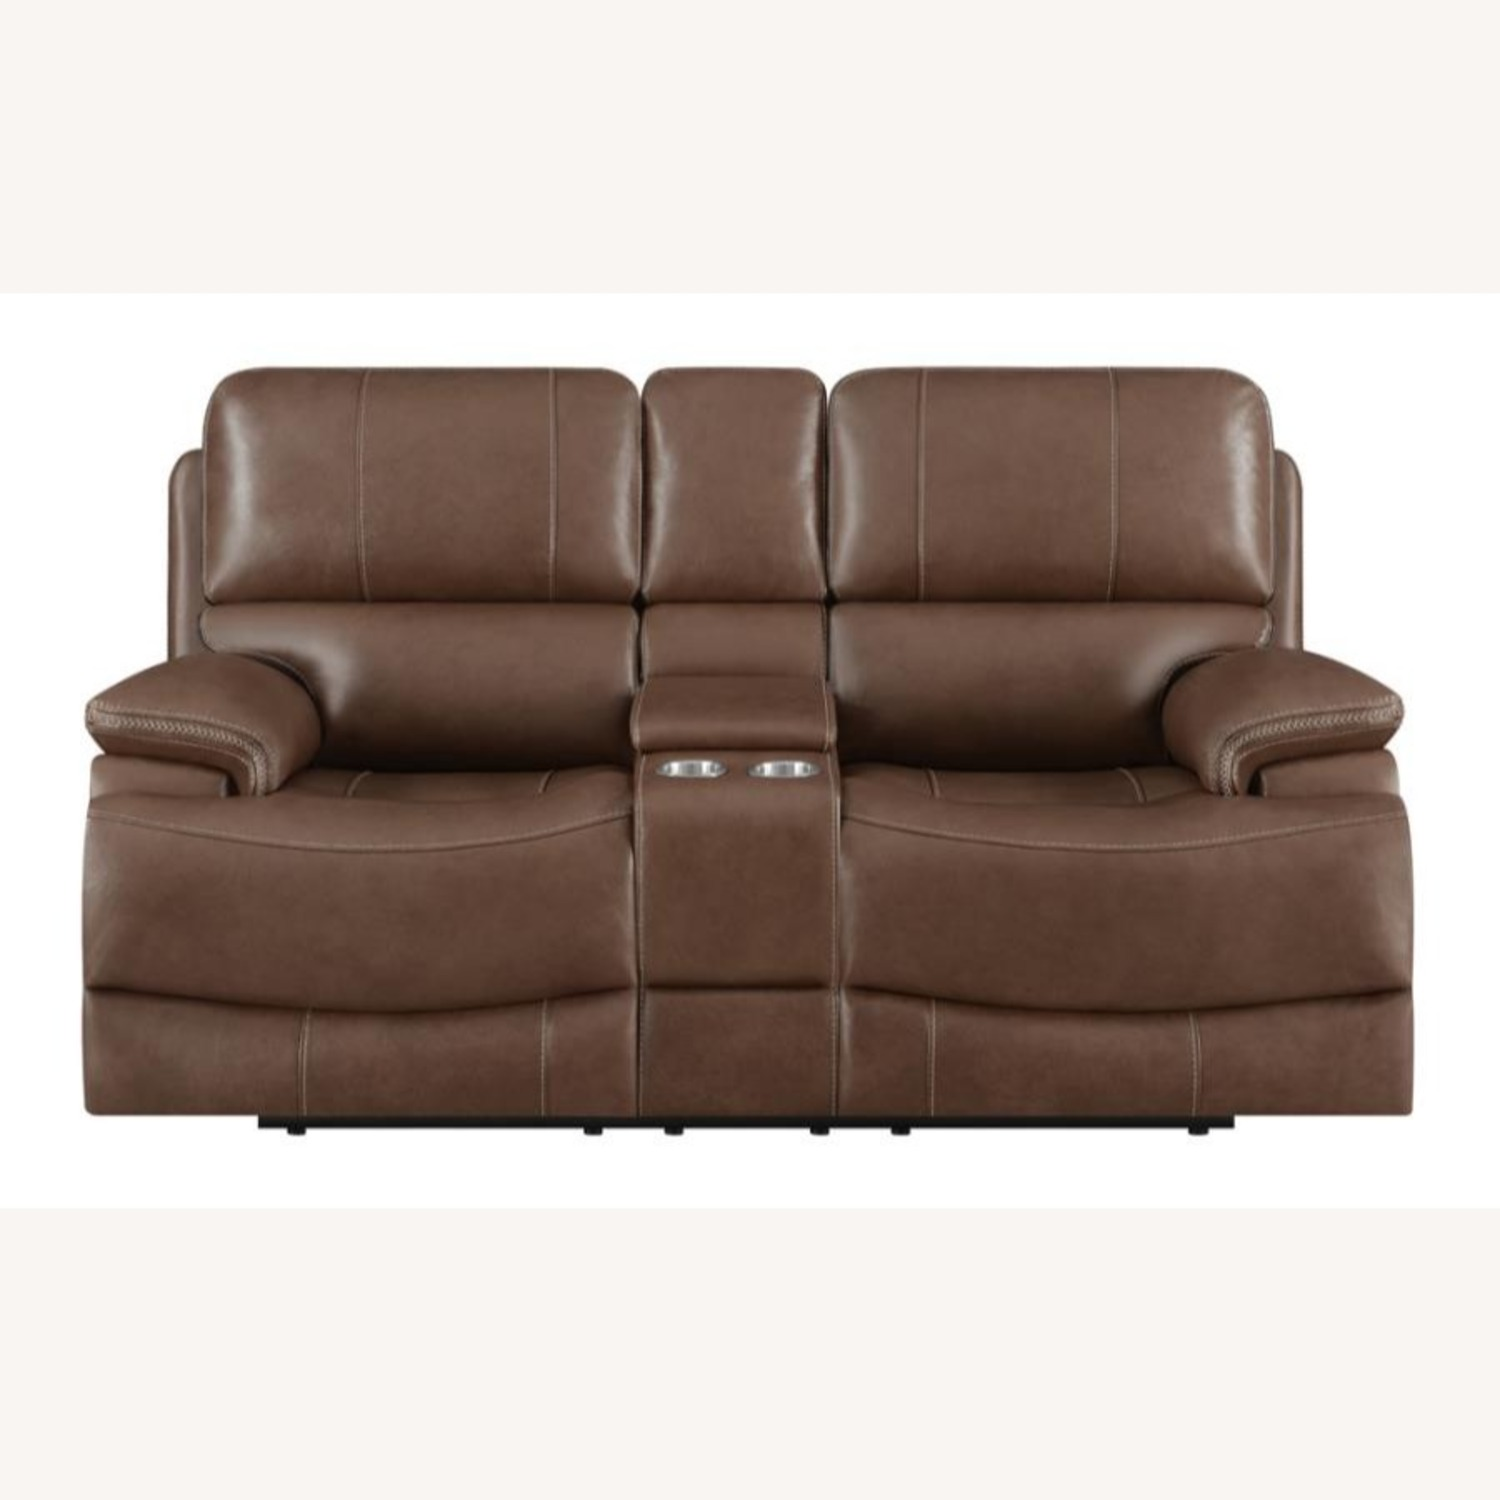 Power Loveseat In Saddle Brown W/ Reclining Seats - image-1